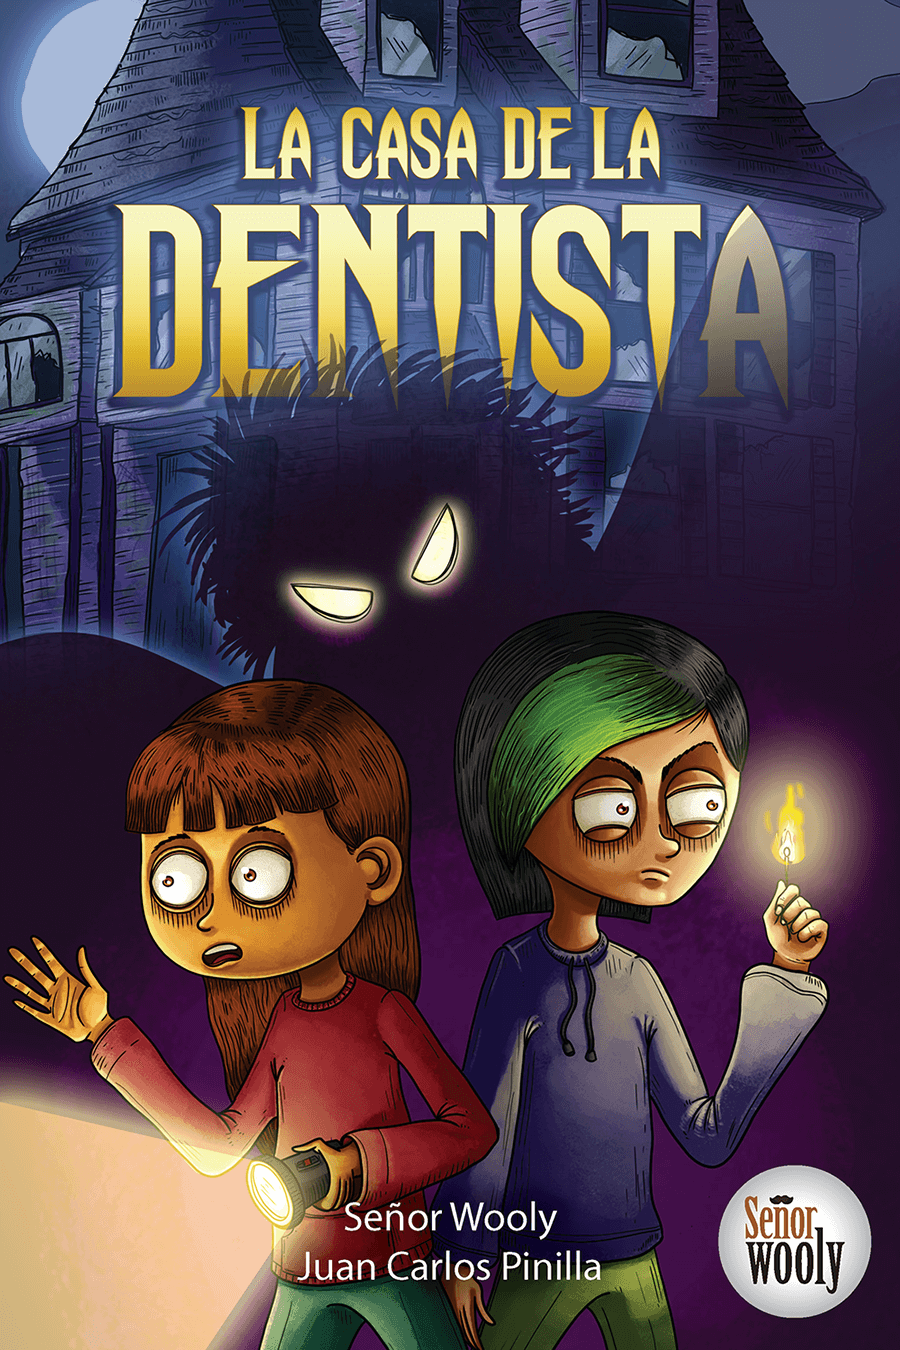 Dentista Graphic Novel